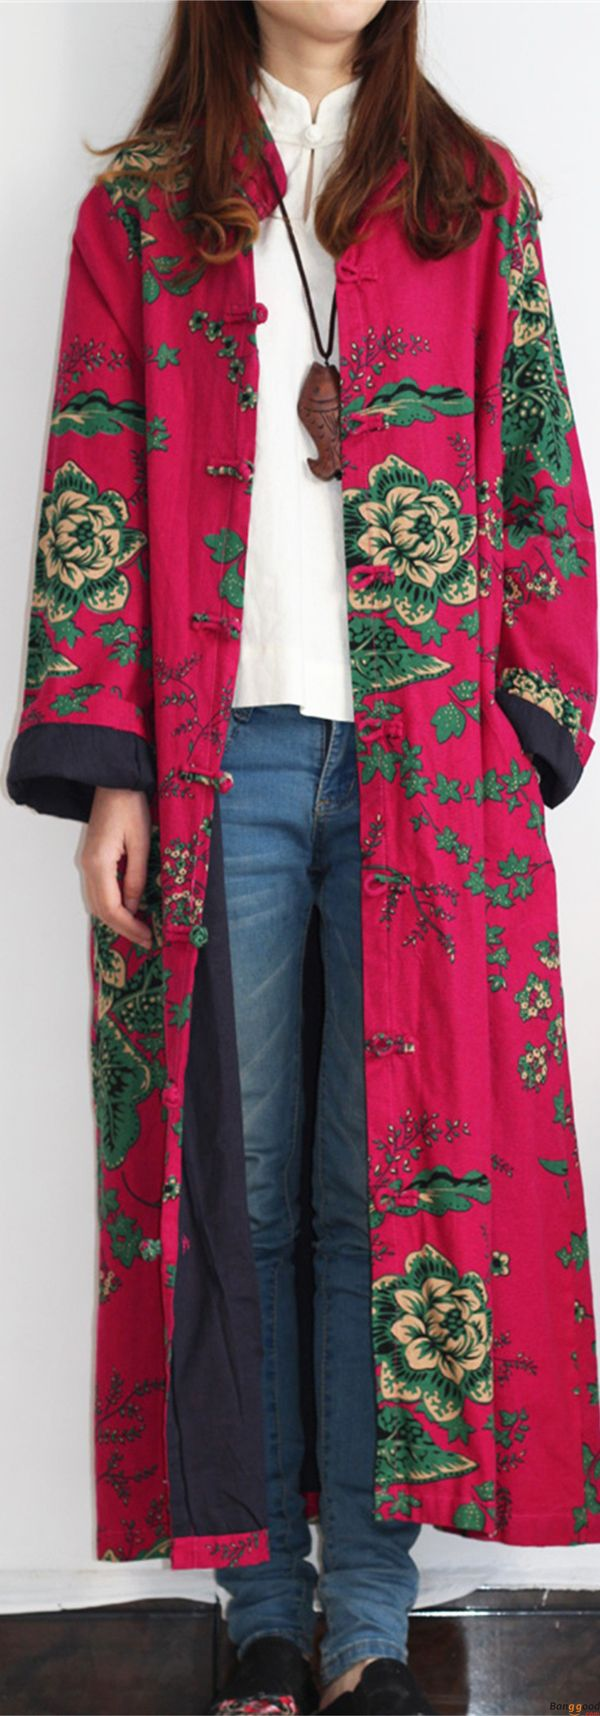 US$28.99+ Free shipping. Size: M~5XL. Color: Blue, Green, Red. Loving this vintage and casual style. O-NEWE M-5XL Vintage Floral Printed Long Coats. Shop at banggood with affordable price. #coats#women#fashion#2018